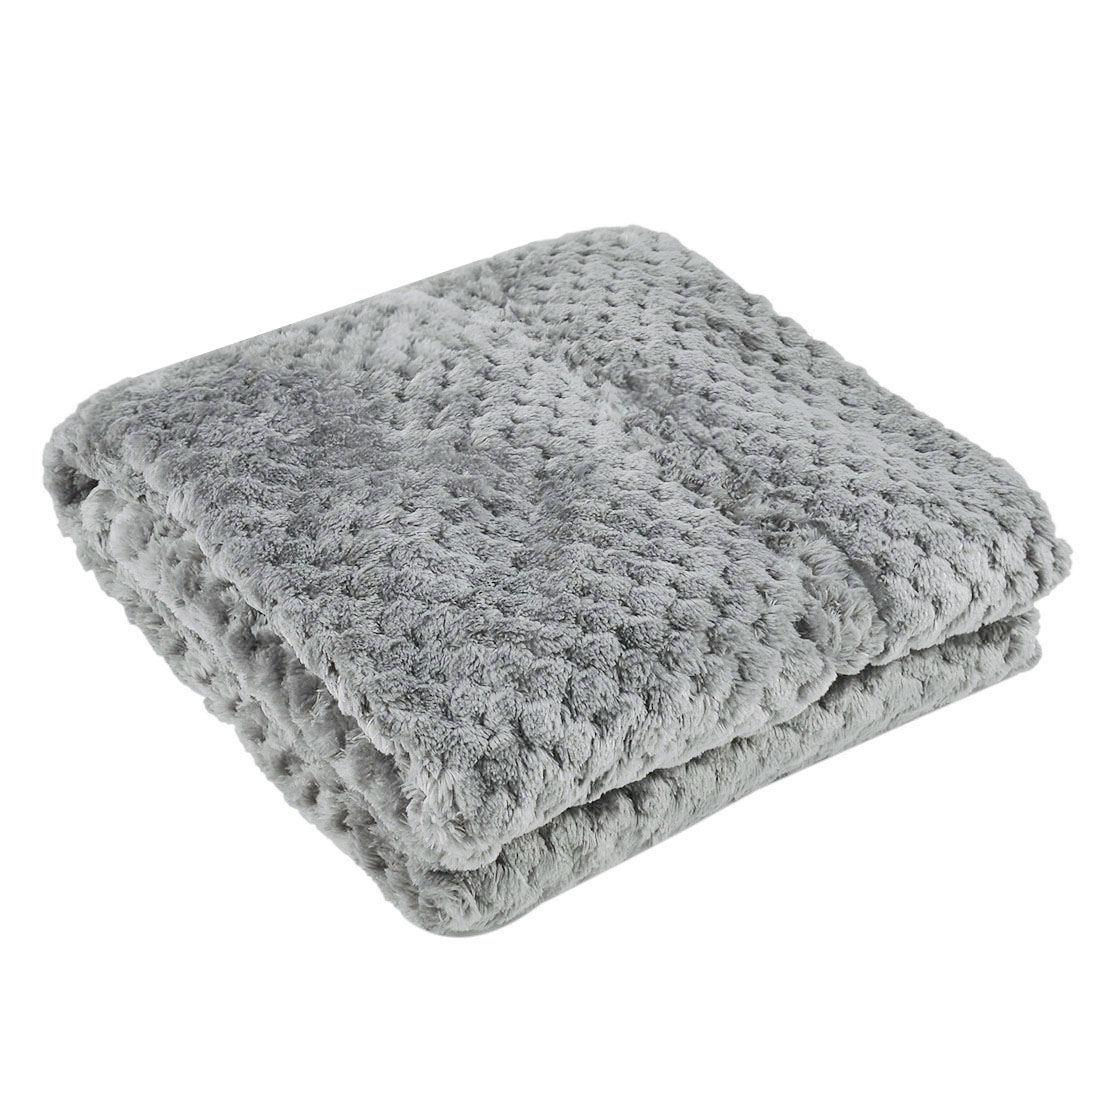 Home Travel Warm Soft Throw Mesh Blanket Rug Bed Quilt Light Gray